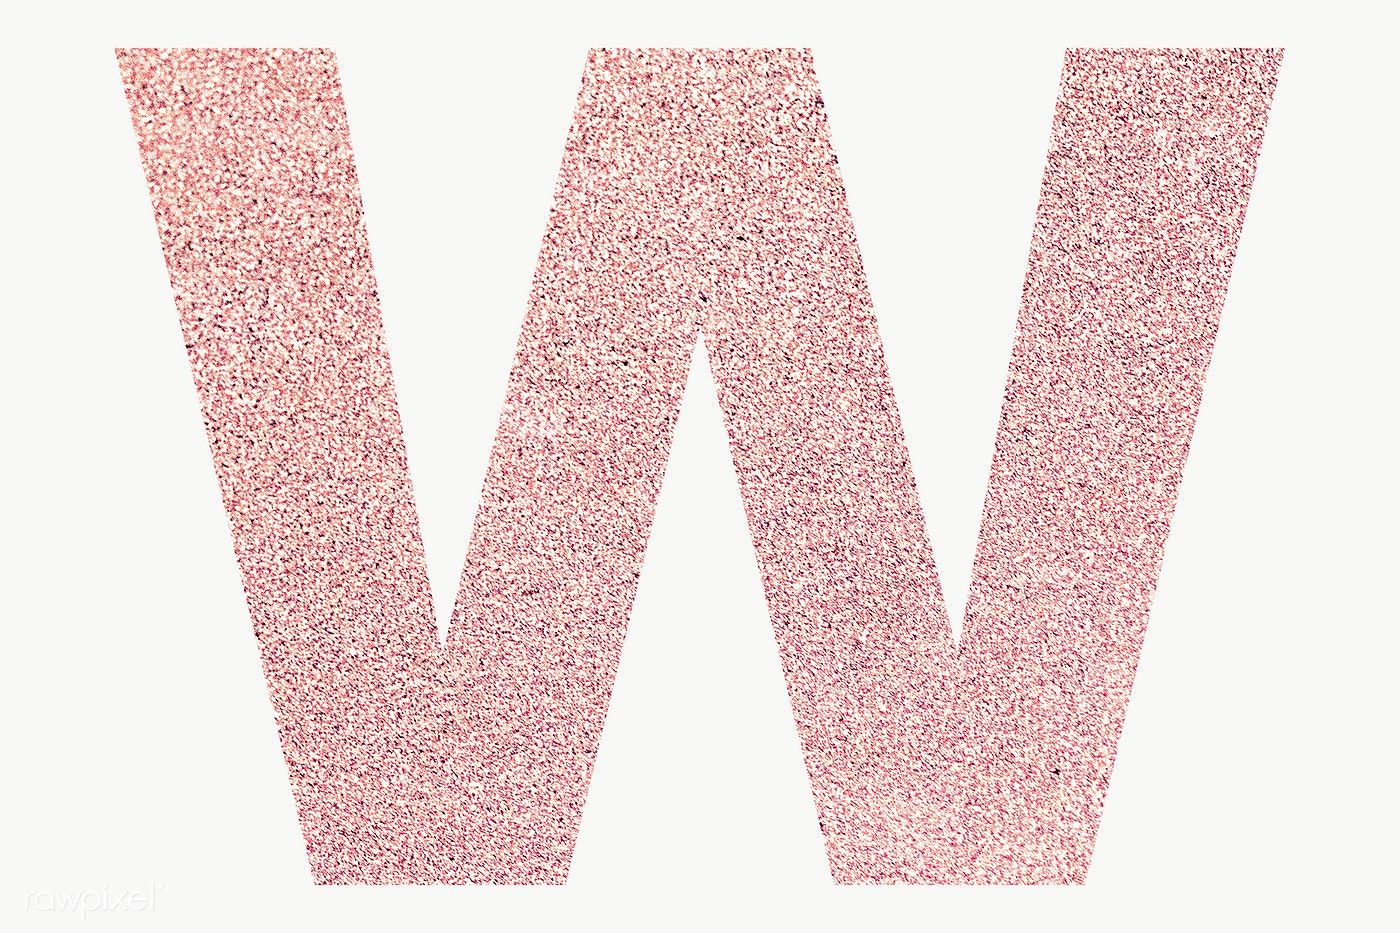 Glitter Capital Letter W Sticker Transparent Png Free Image By Rawpixel Com Ningzk V Transparent Stickers Lettering Numbers Typography